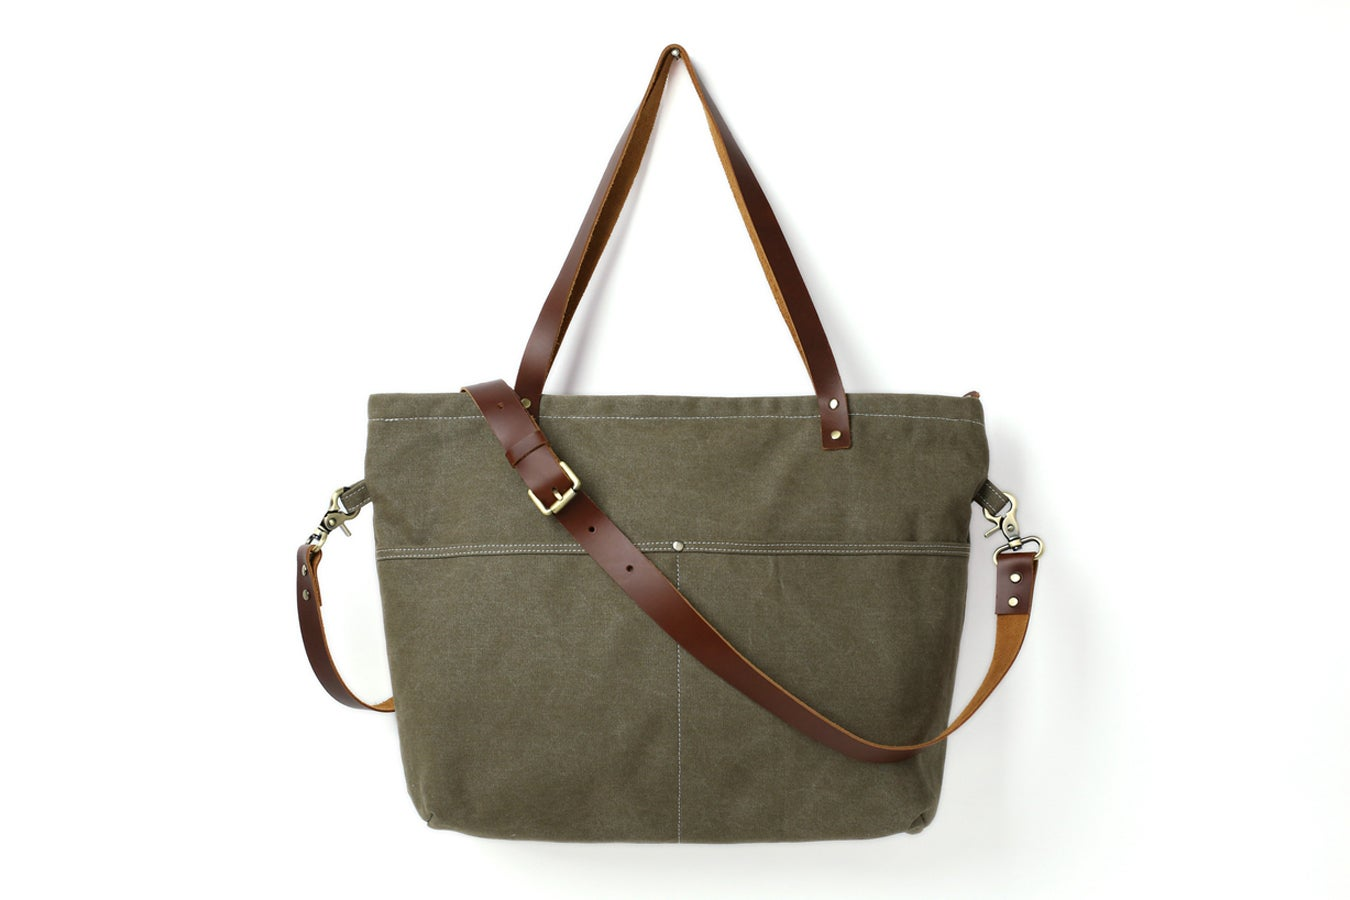 3bc71d1cd3c9 MoshiLeatherBag - Handmade Leather Bag Manufacturer — Waxed Canvas with  Leather Women Tote Bag